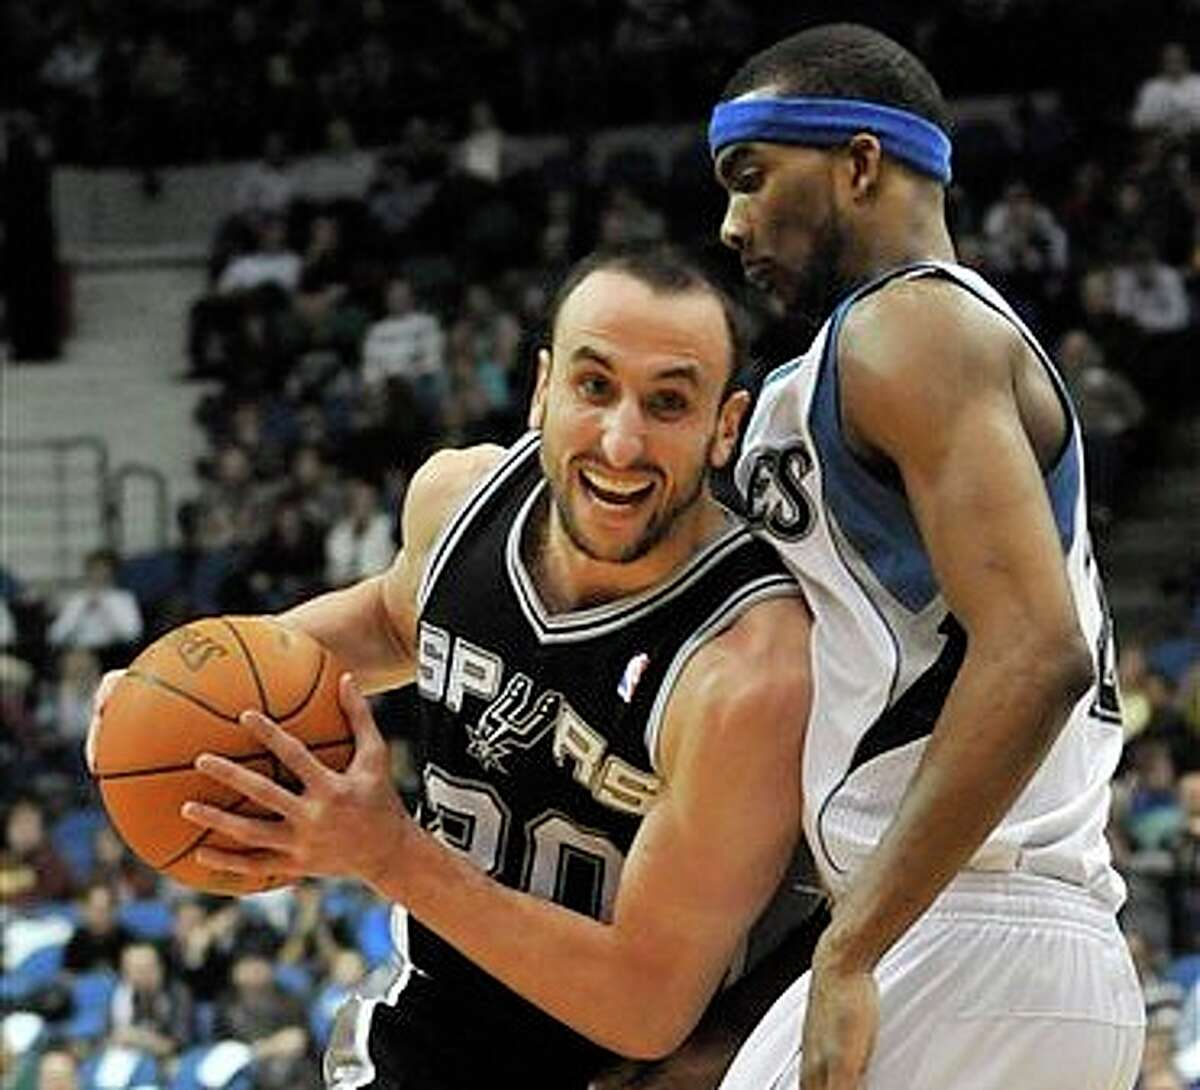 Manu Ginobili drives by Corey Brewer during the second half. (Associated Press)